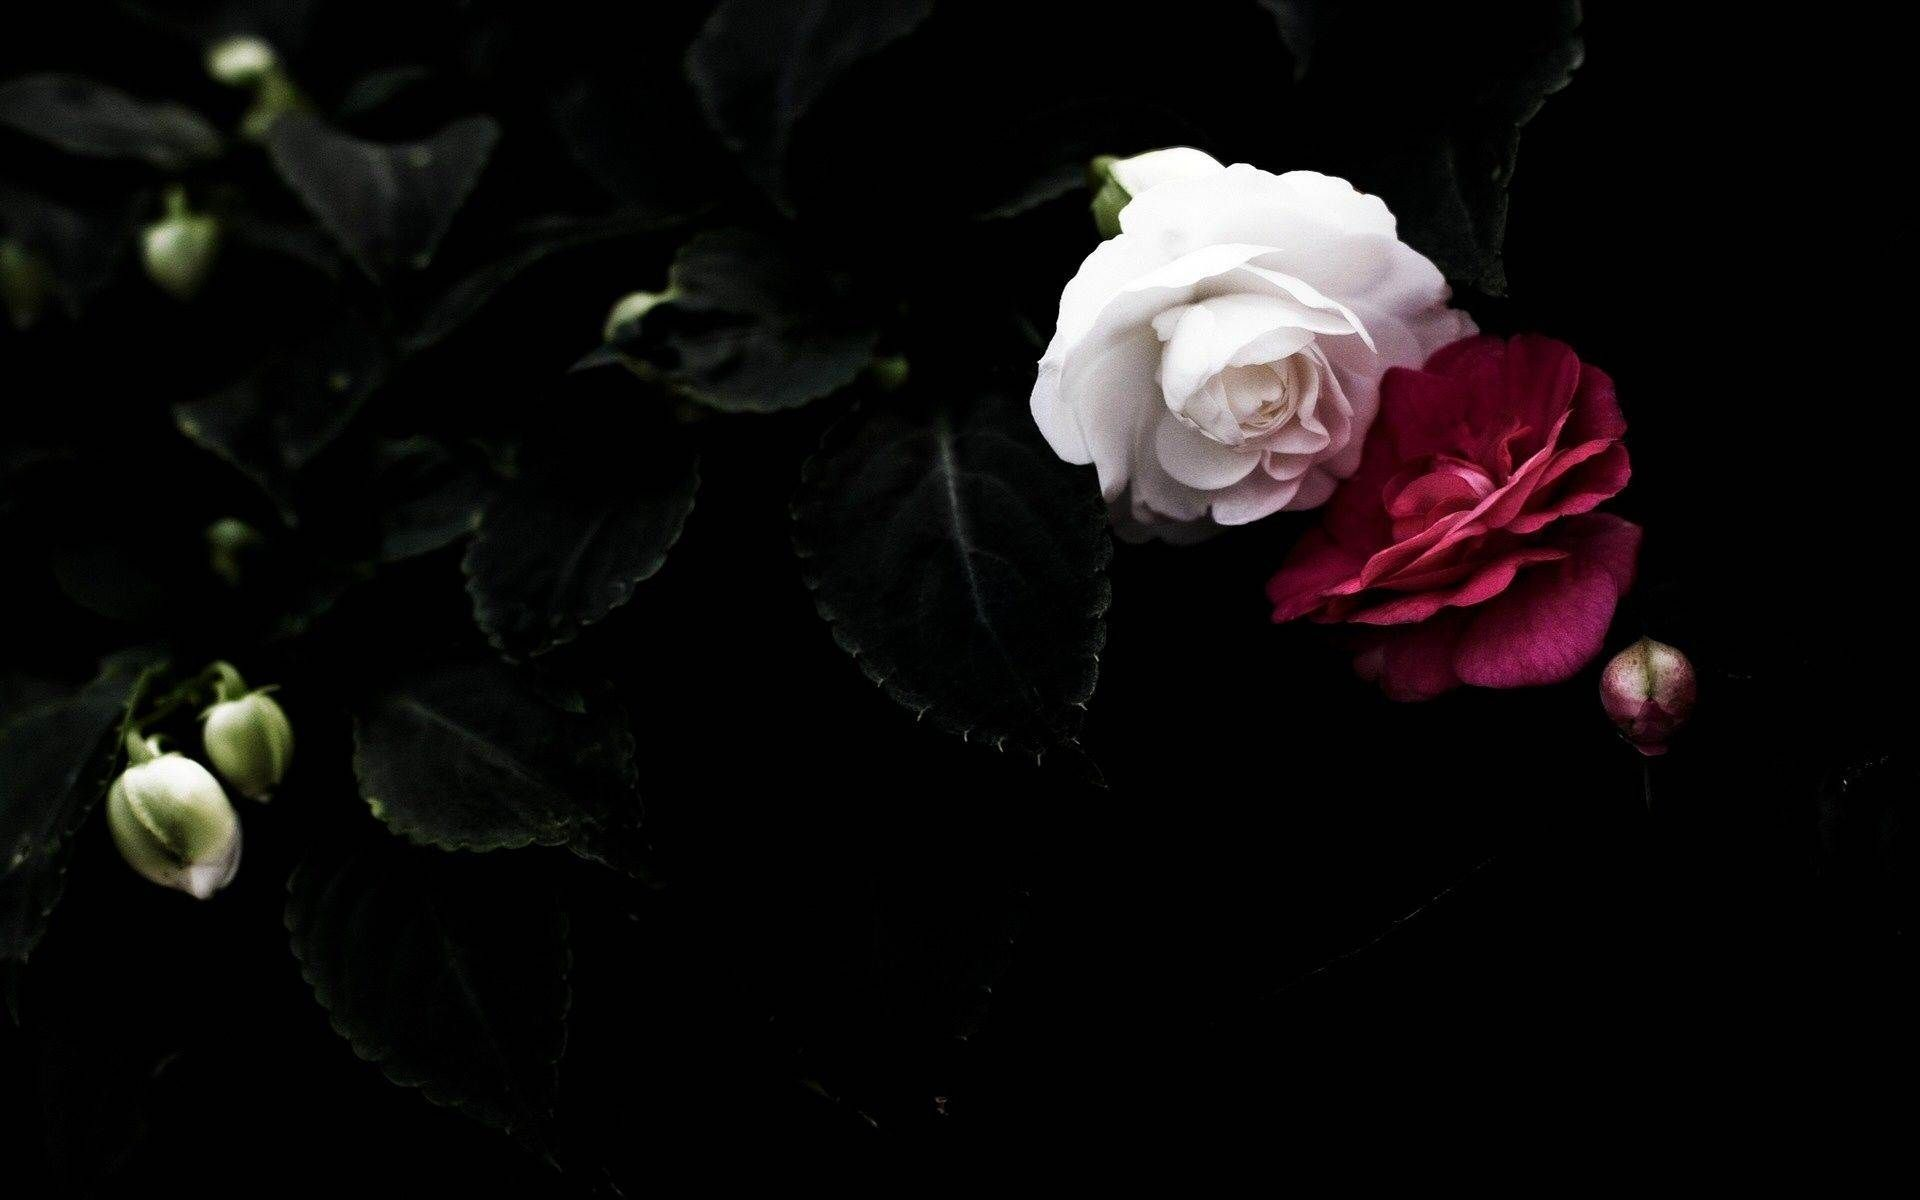 BEAUTIFUL FLOWER WALLPAPERS FREE TO DOWNLOAD Flower images